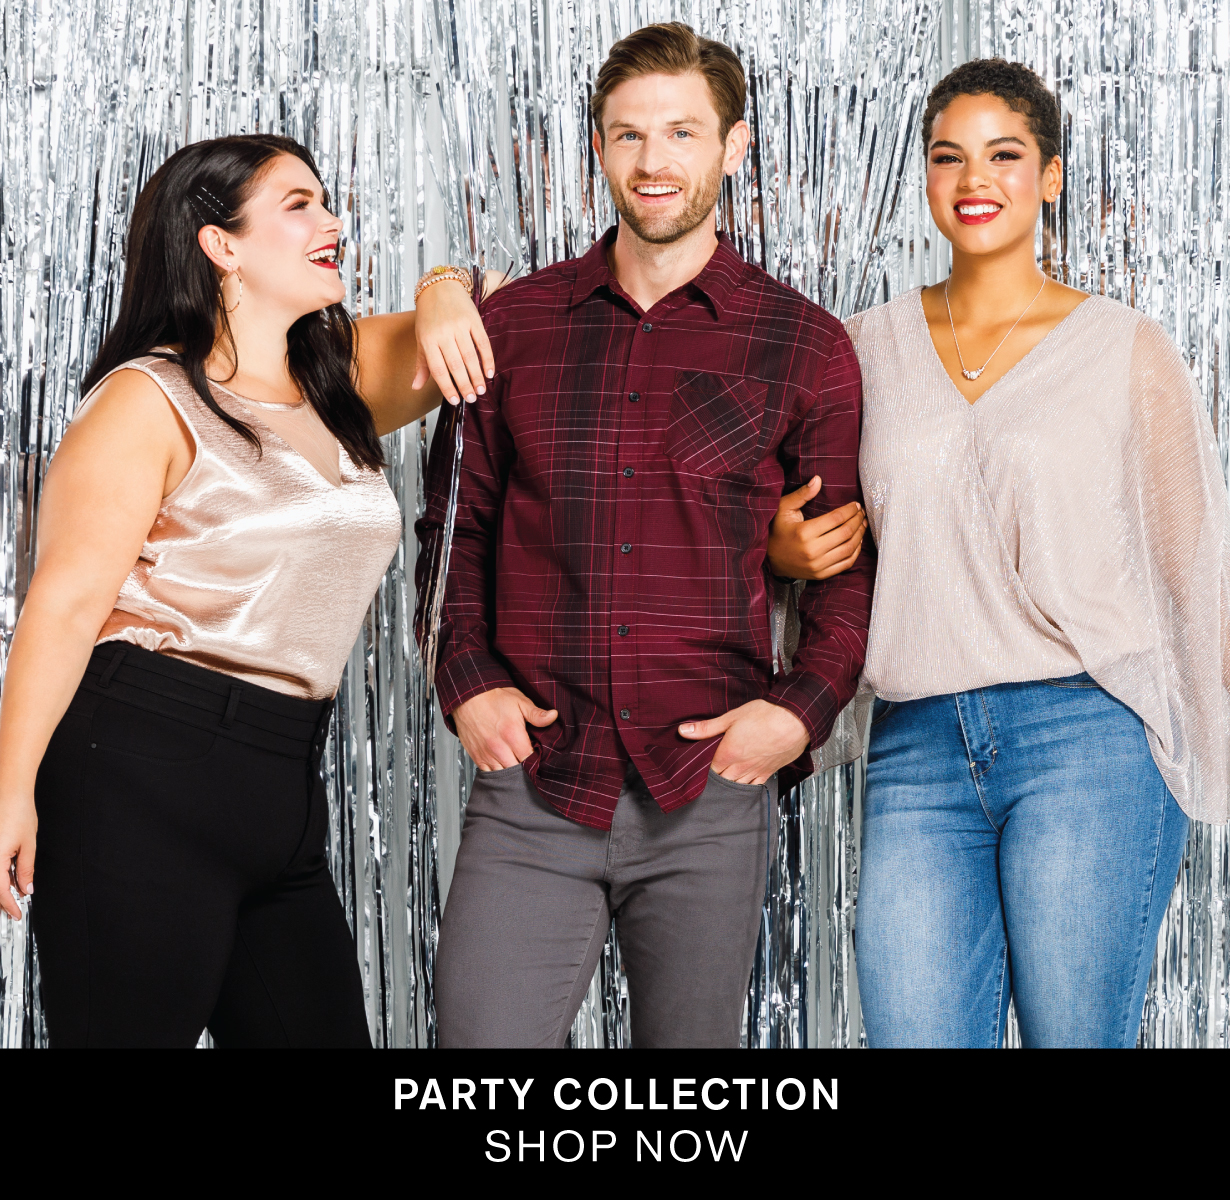 PARTYCOLLECTION